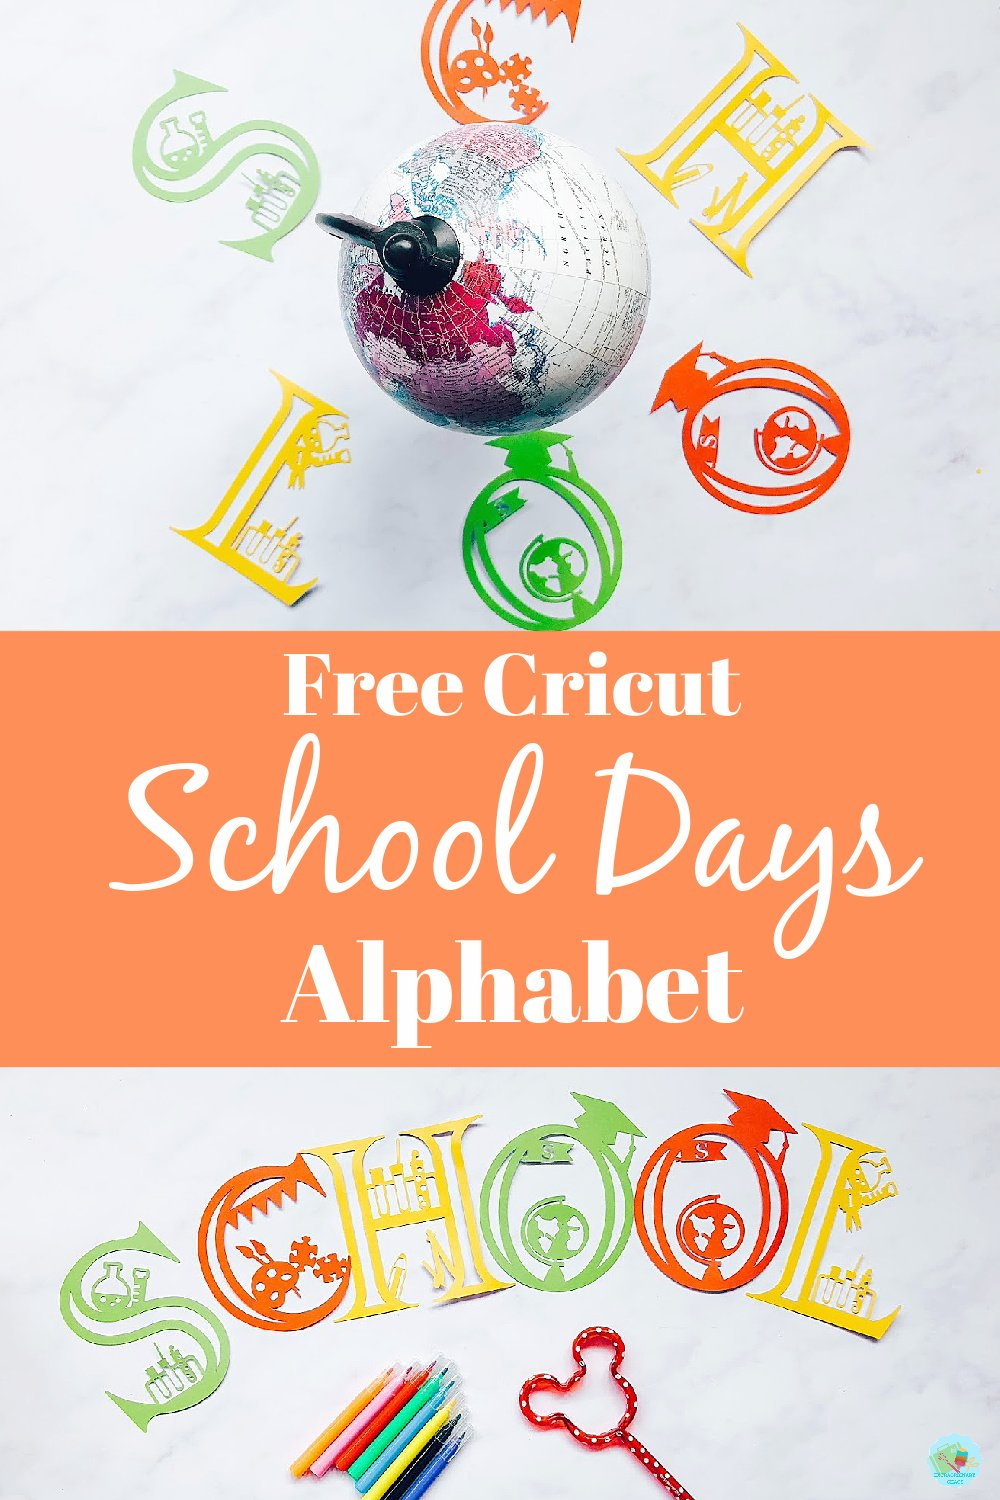 Free Cricut Back To School Letters for craft projects and school days themed decor and banners